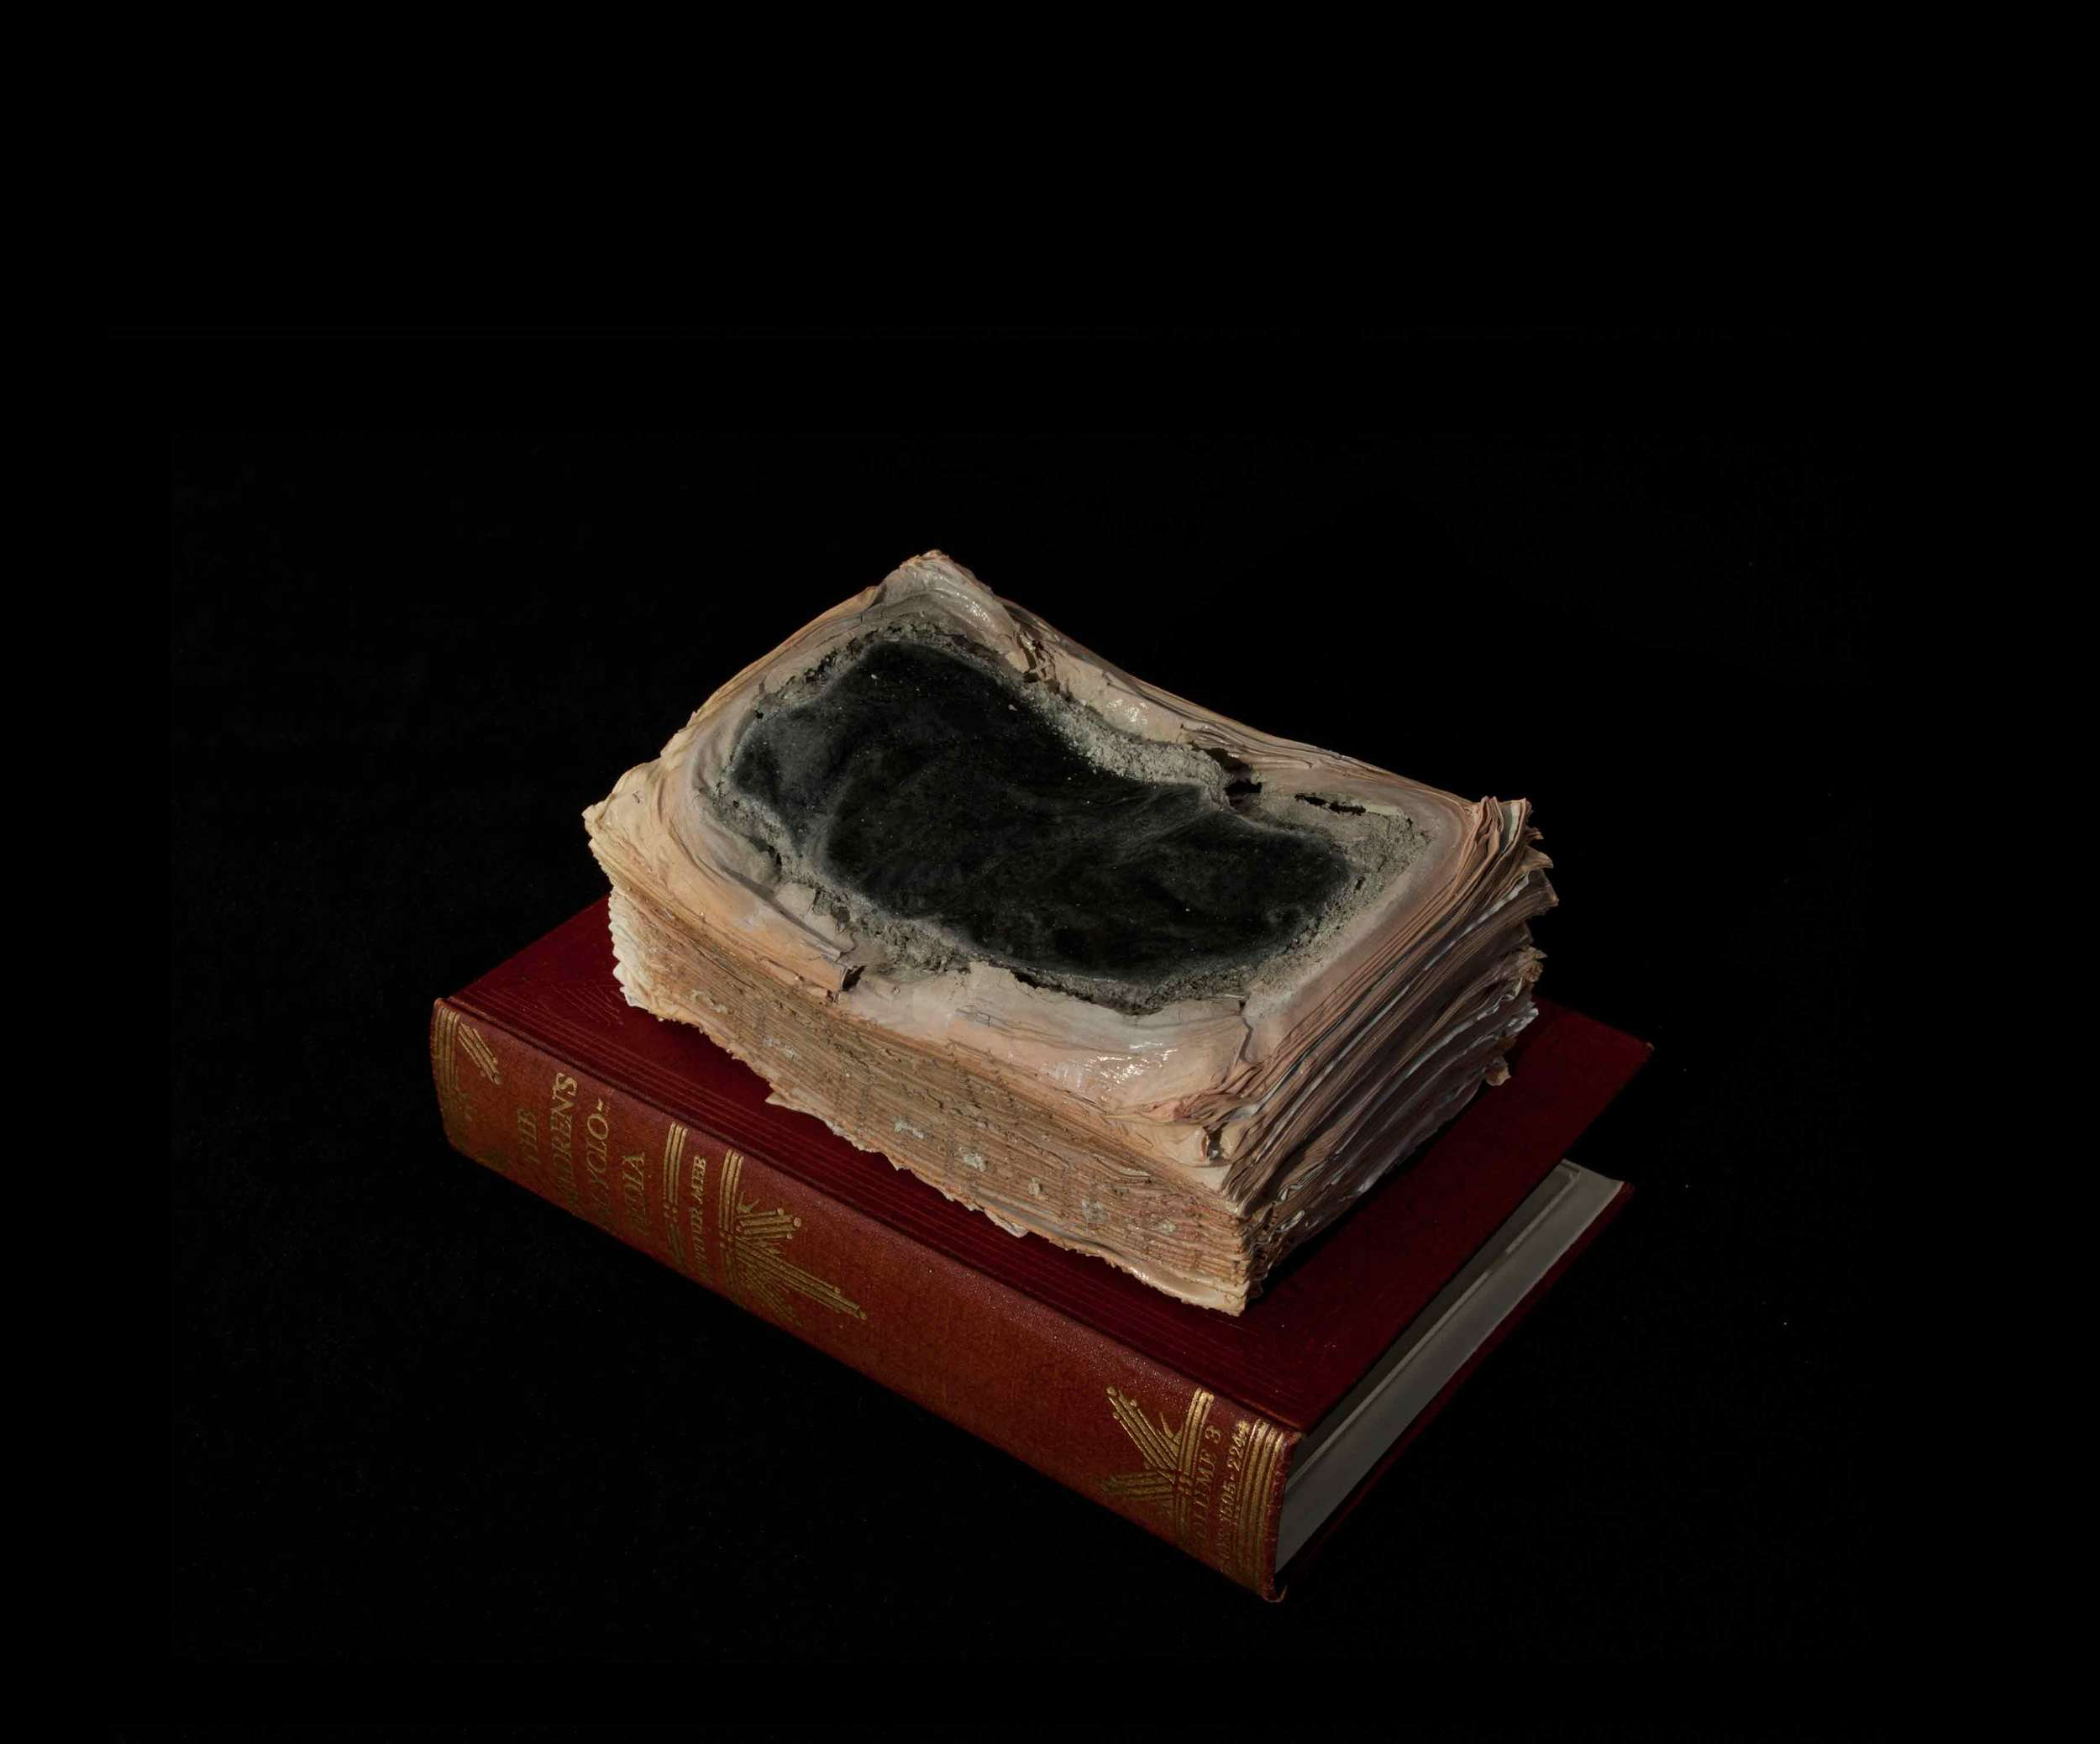 CYRUS TANG   Children's Encyclopaedia Vol 3  2016 Cremated book ashes, book cover and acrylic case 29 x 21 x 21 cm